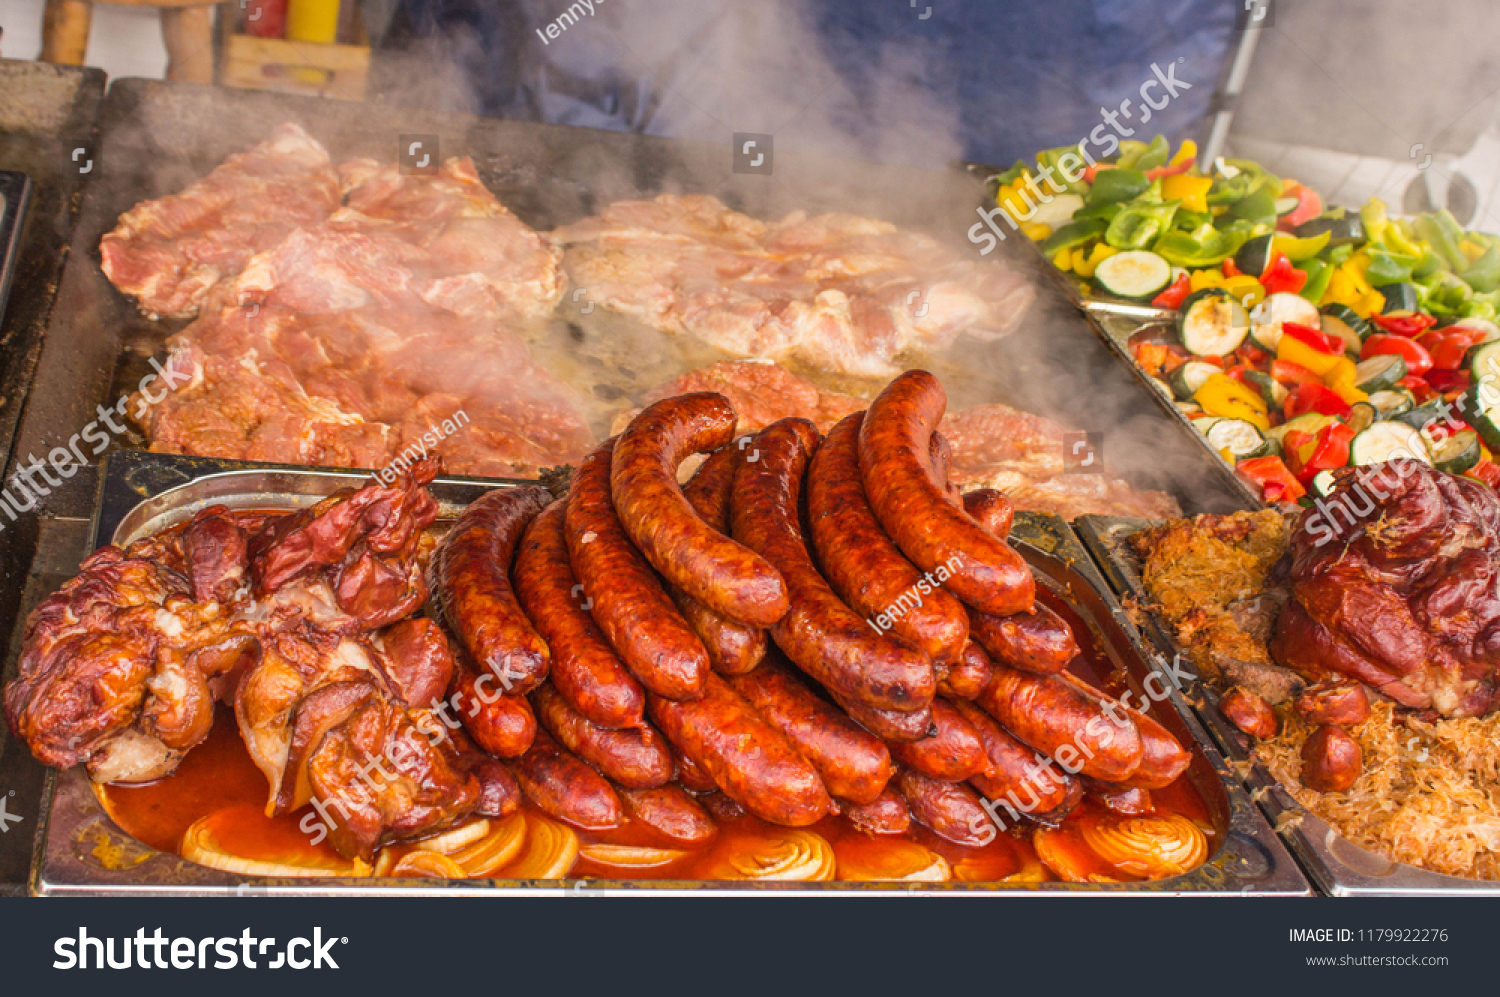 stock-photo-street-food-grilled-sausage-